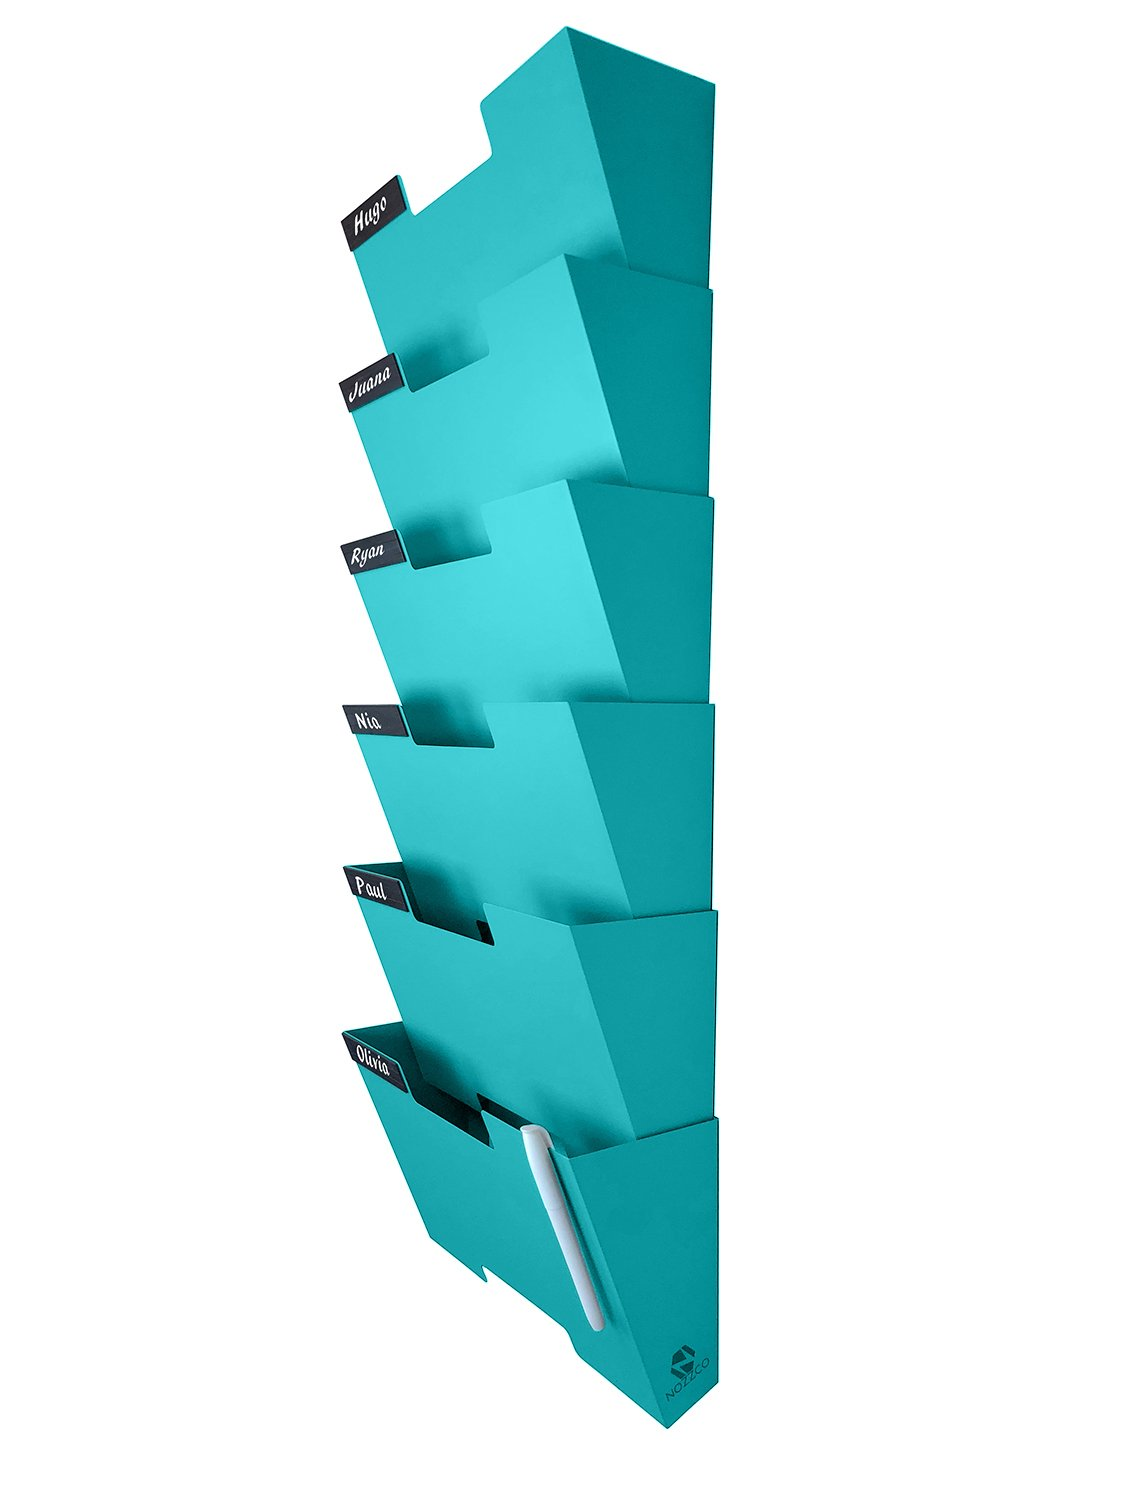 Wall Mount Hanging File Holder Organizer 6 Pack | Durable Steel Rack, Solid, Sturdy & Wide | for Letters, Files, Magazines & More | Organize The Desktop, Declutter Your Office - Nozzco (Blue, 6 Pack)